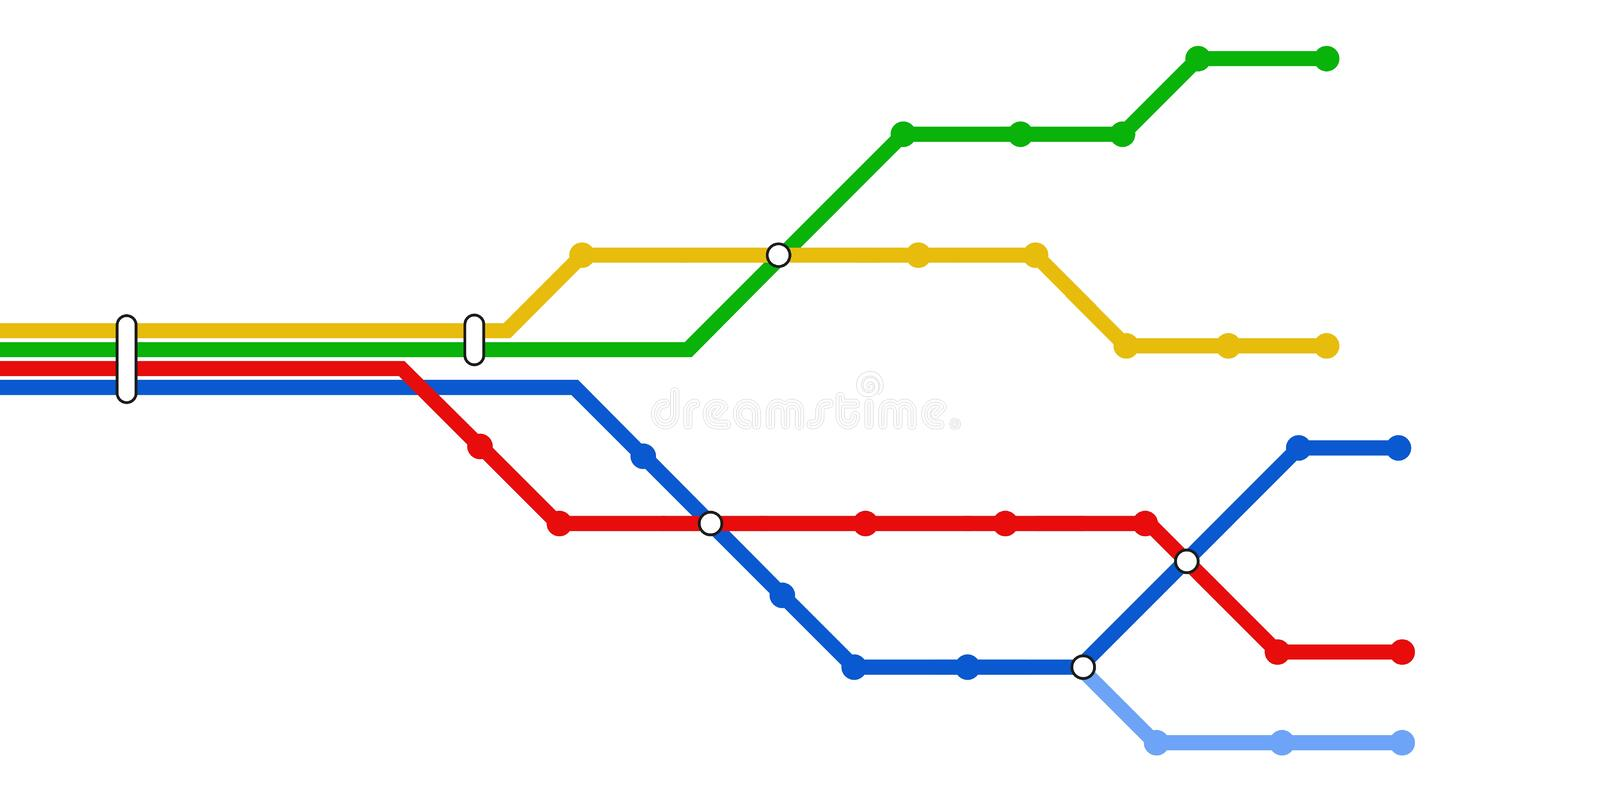 Subway schematic map. Colorful schematic map of subway lines. Vector available royalty free illustration